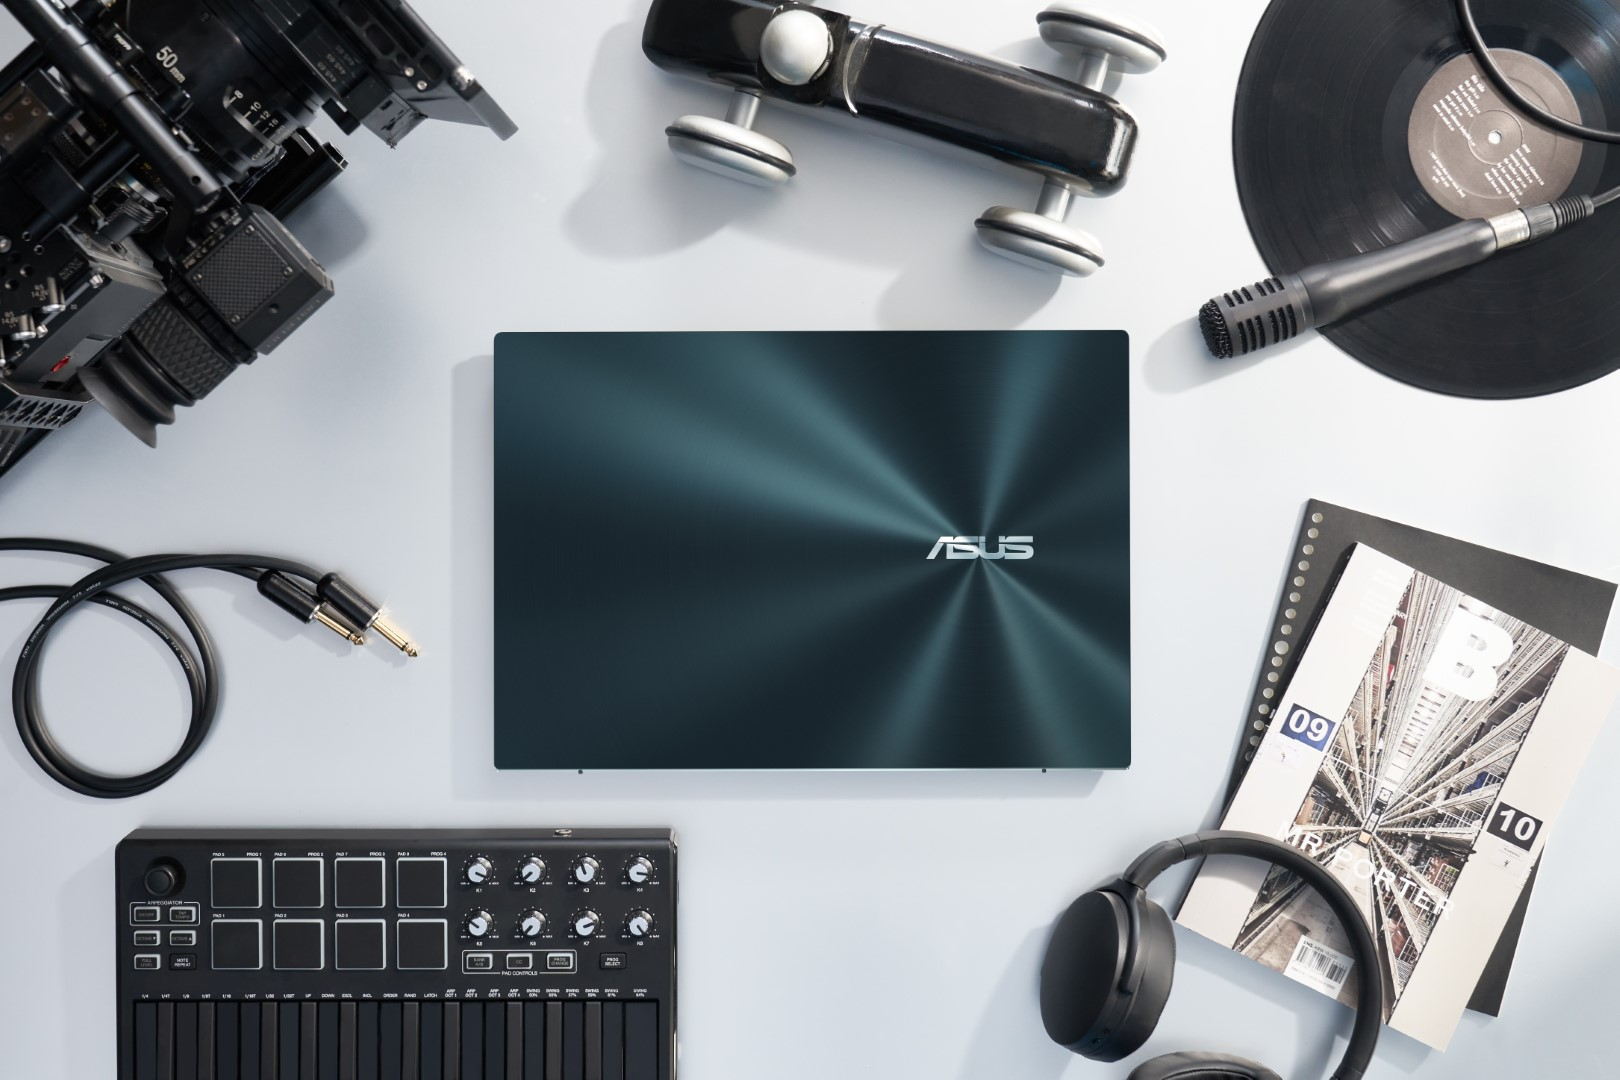 Review: ASUS ZenBook Pro Duo 15 OLED (UX582) – Gadget Voize